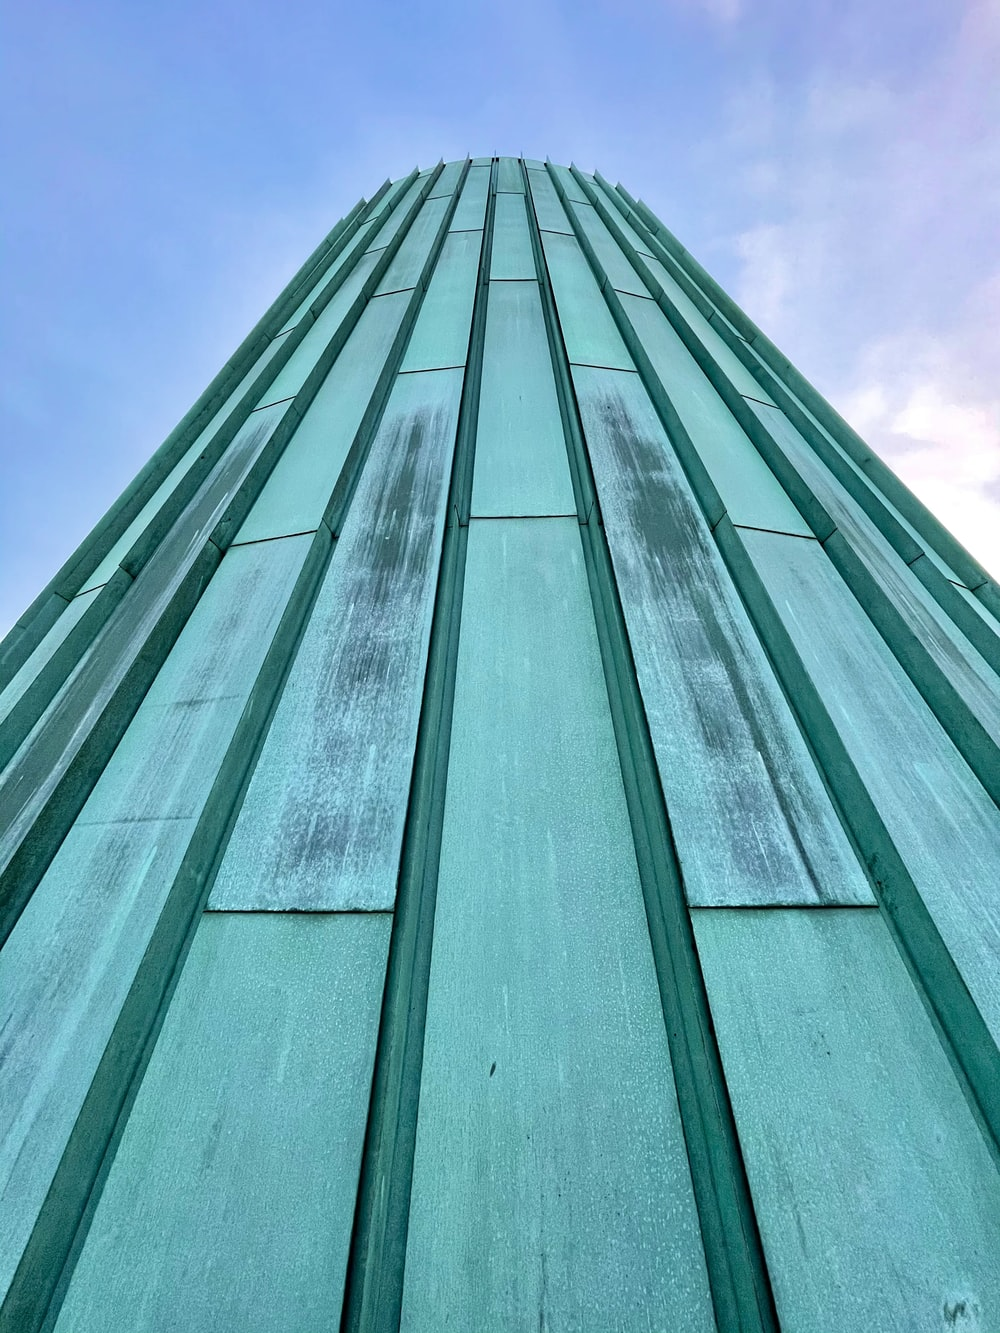 green concrete building under blue sky during daytime